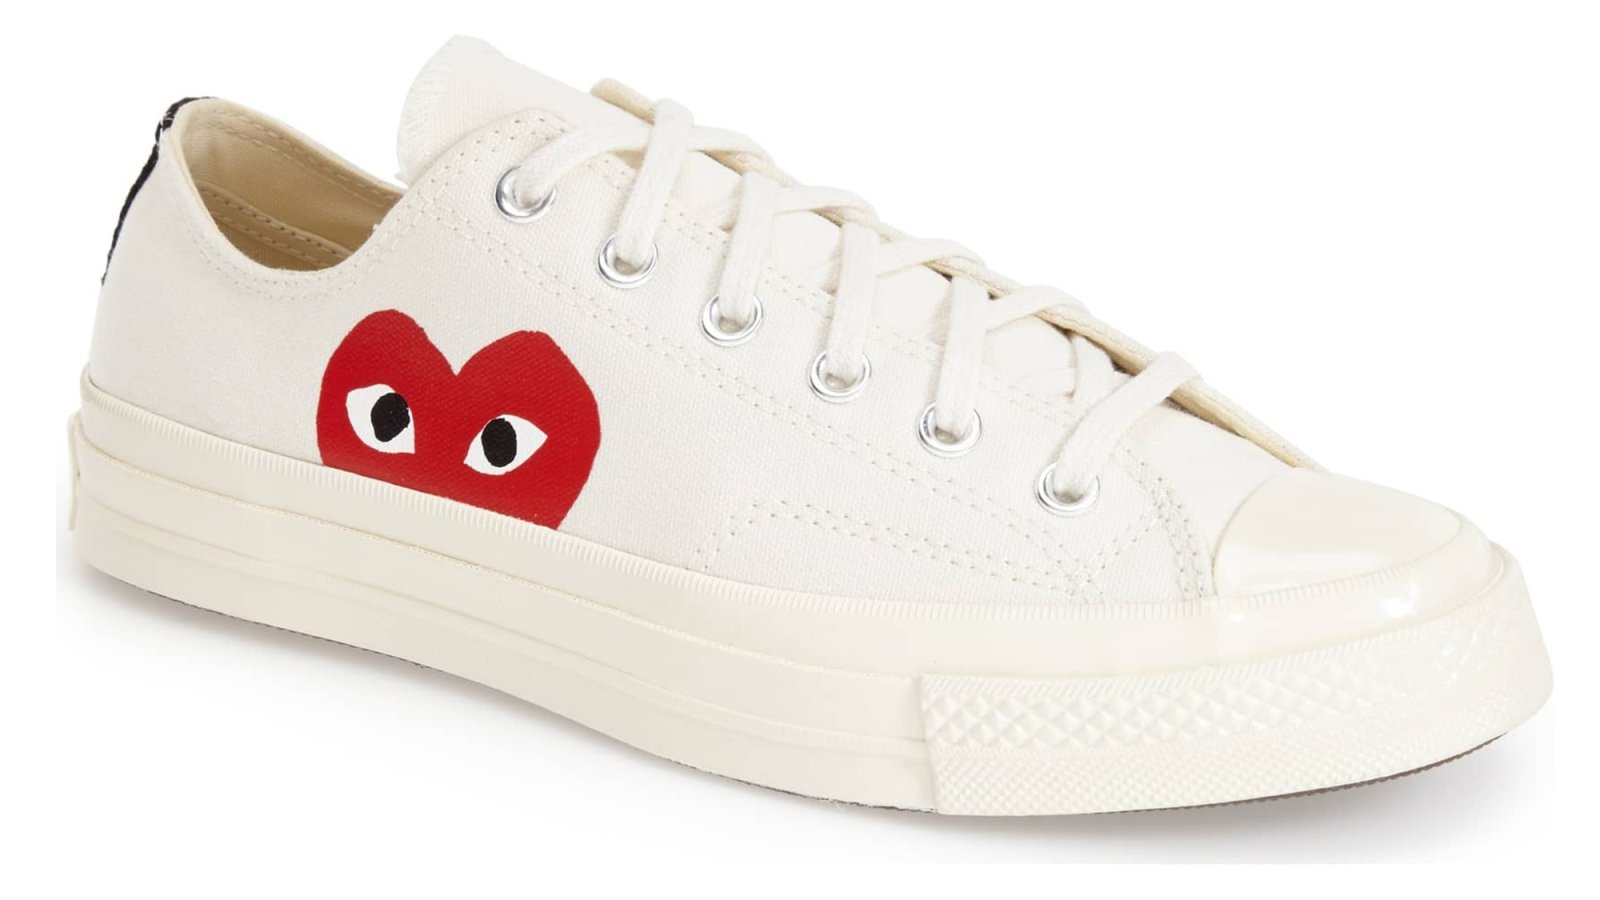 907ee5331143a3 This Vintage-Inspired Converse X Comme des Garcons Sneaker Is Just Too Cute